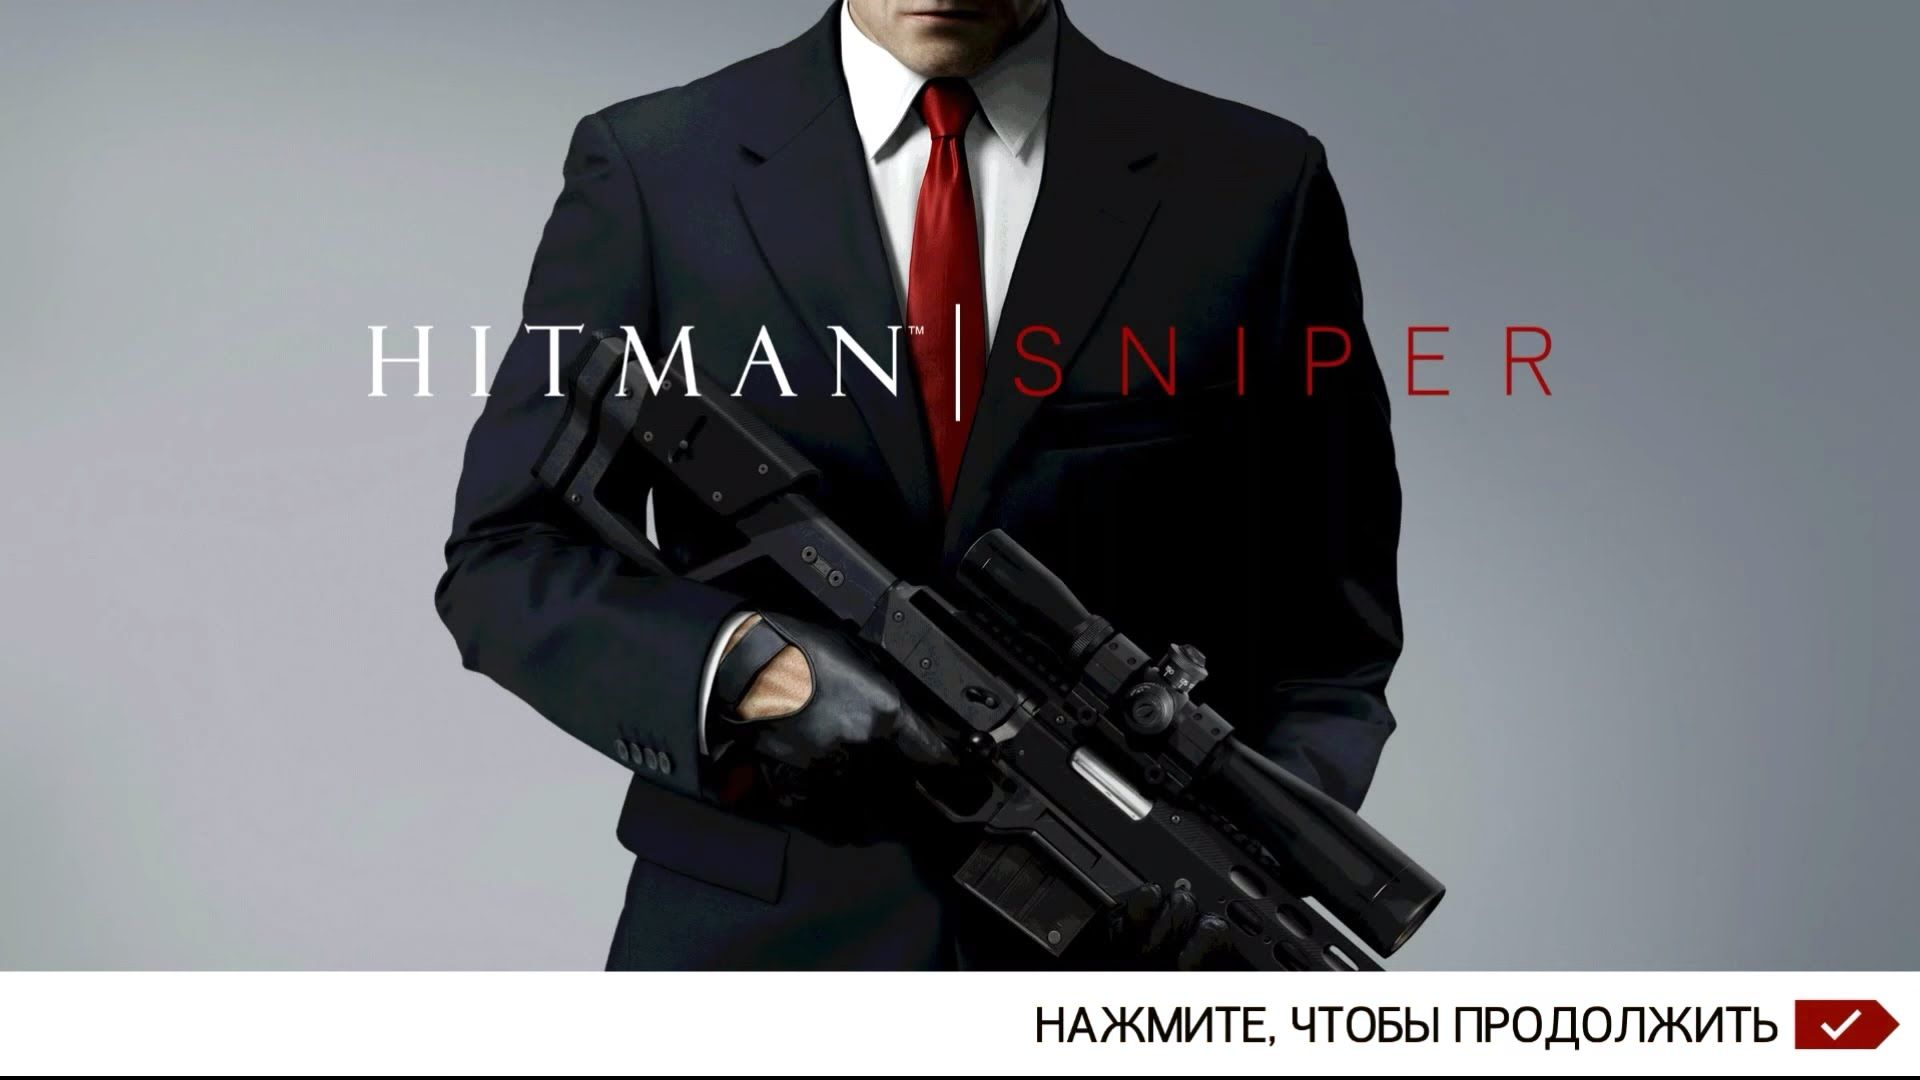 154133ab41c40be8c46faccc2026e5dc hitman sniper gameplay chapter 1 mission 7 of 10 objective 01 Hitman Sniper Rifle at edmiracle.co